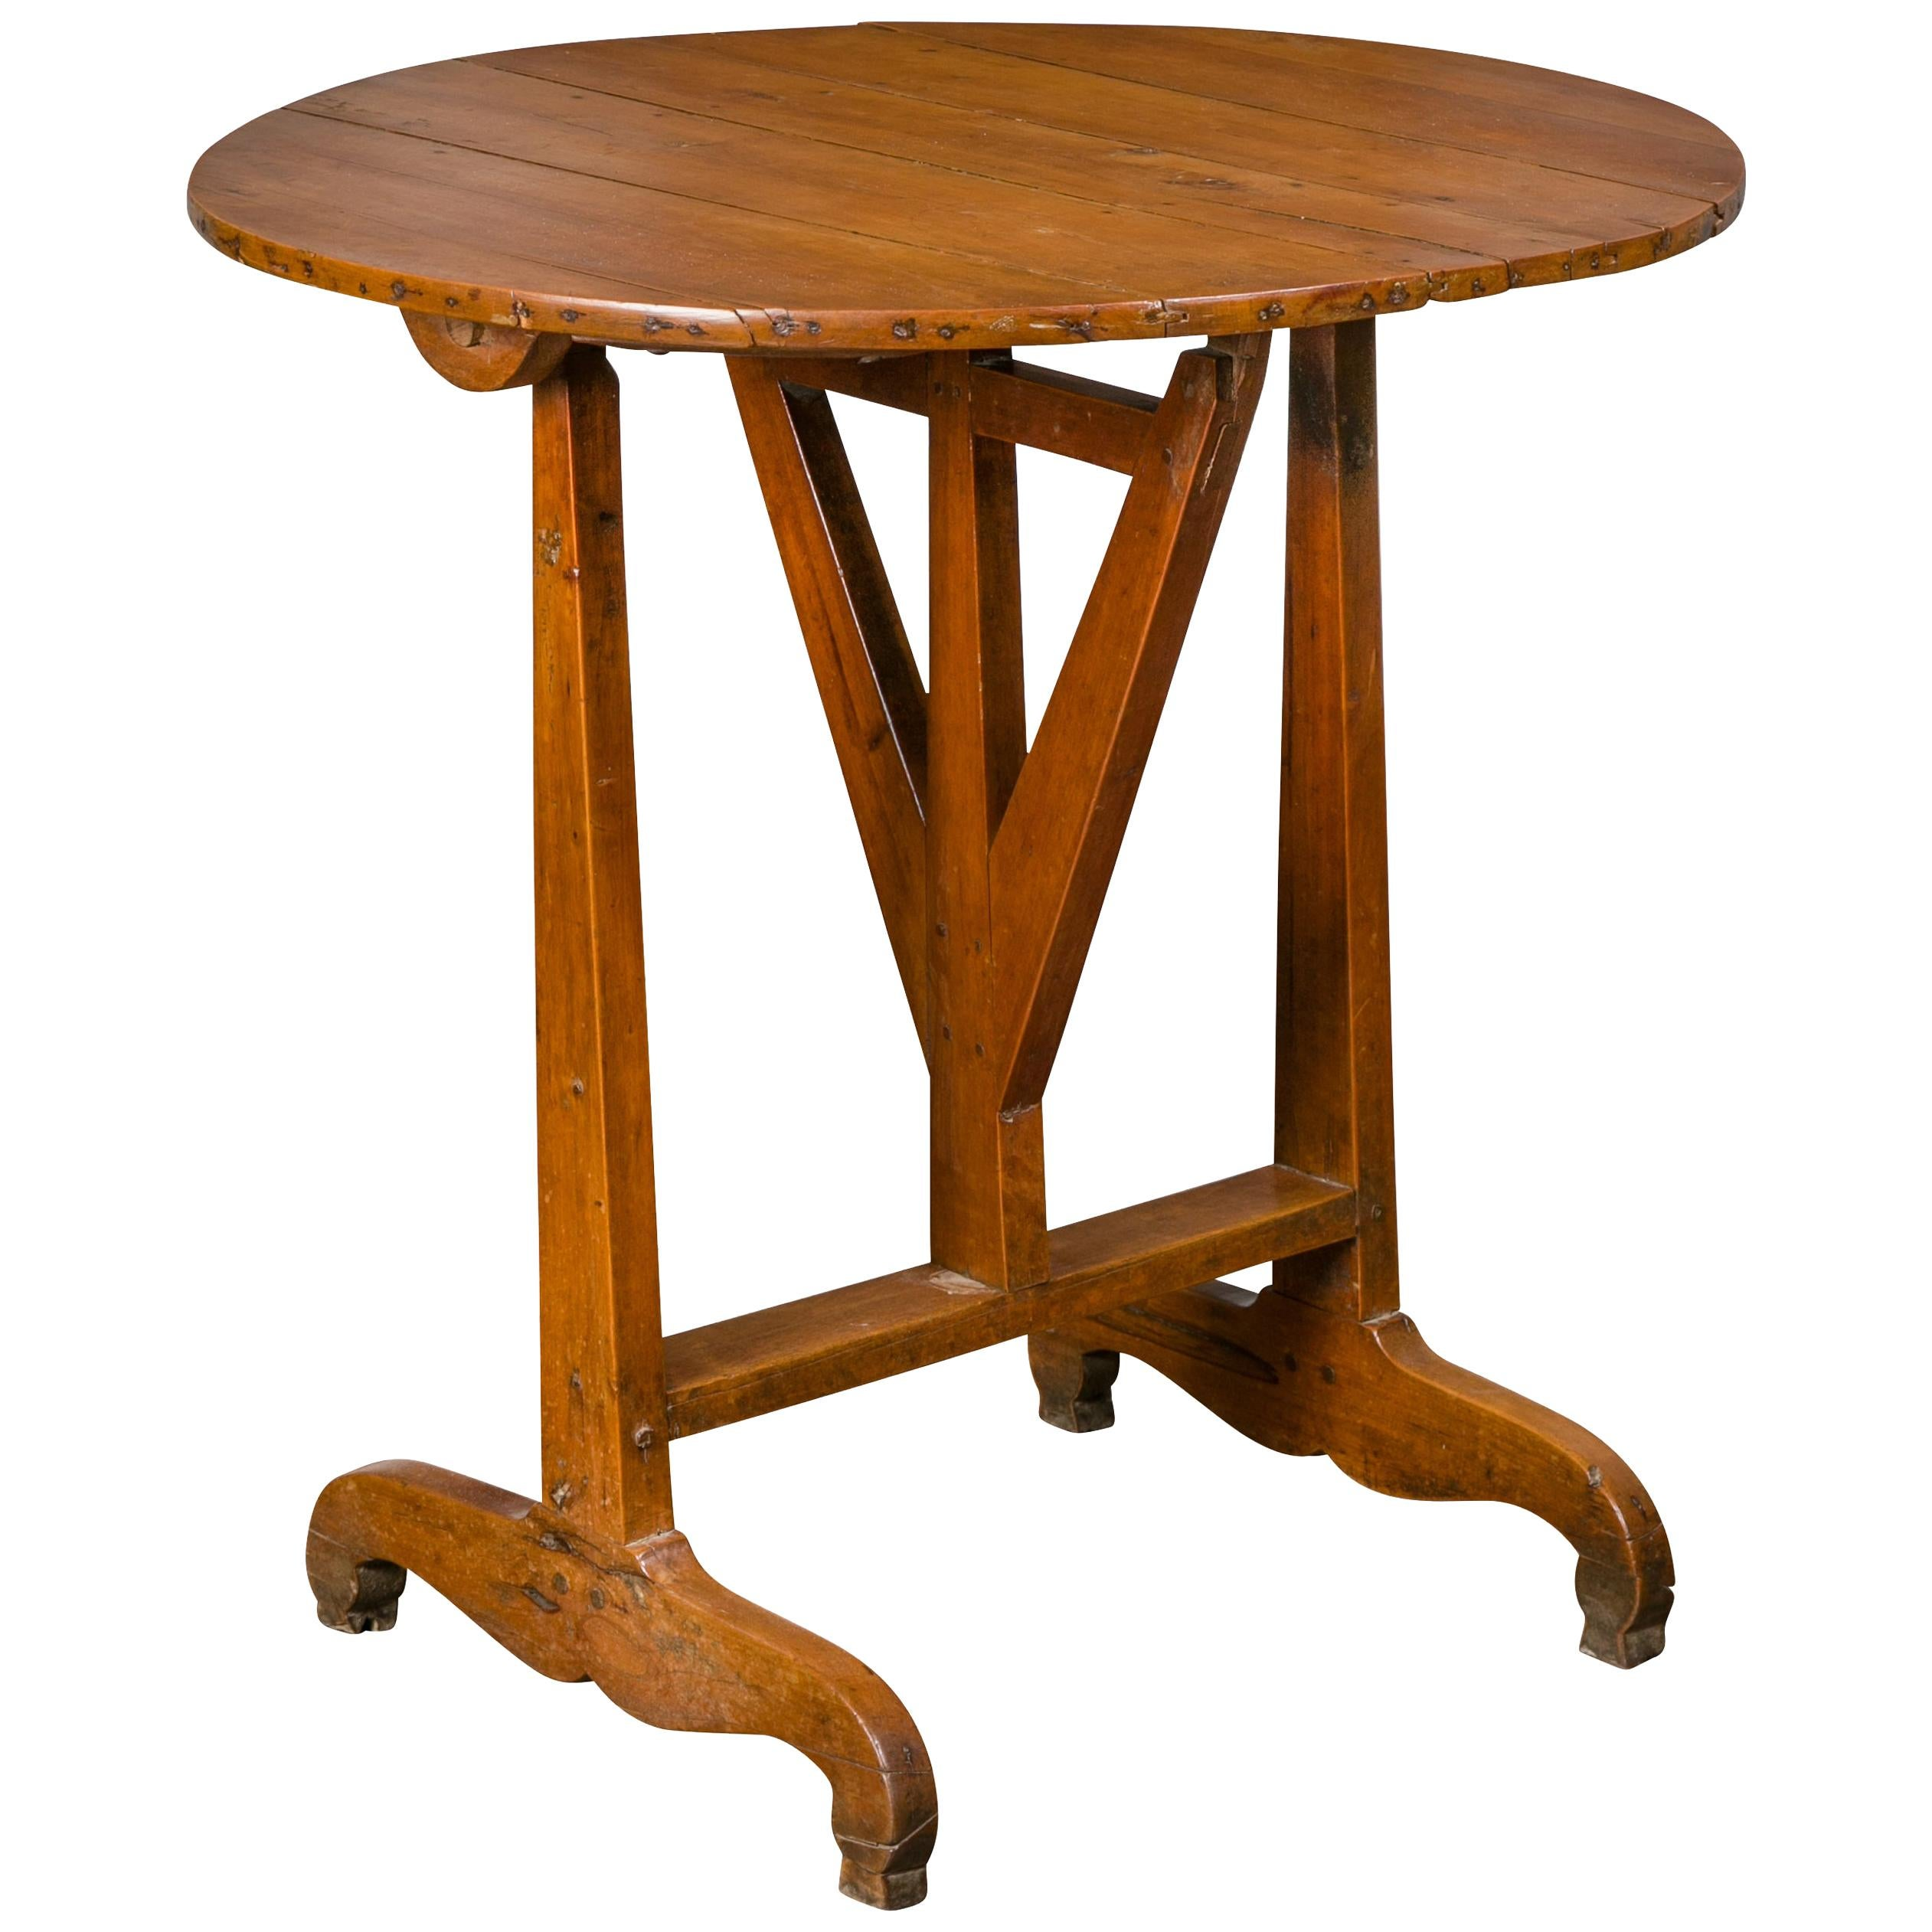 French 1900s Walnut Wine Tasting Table with Round Tilt-Top and Trestle Base